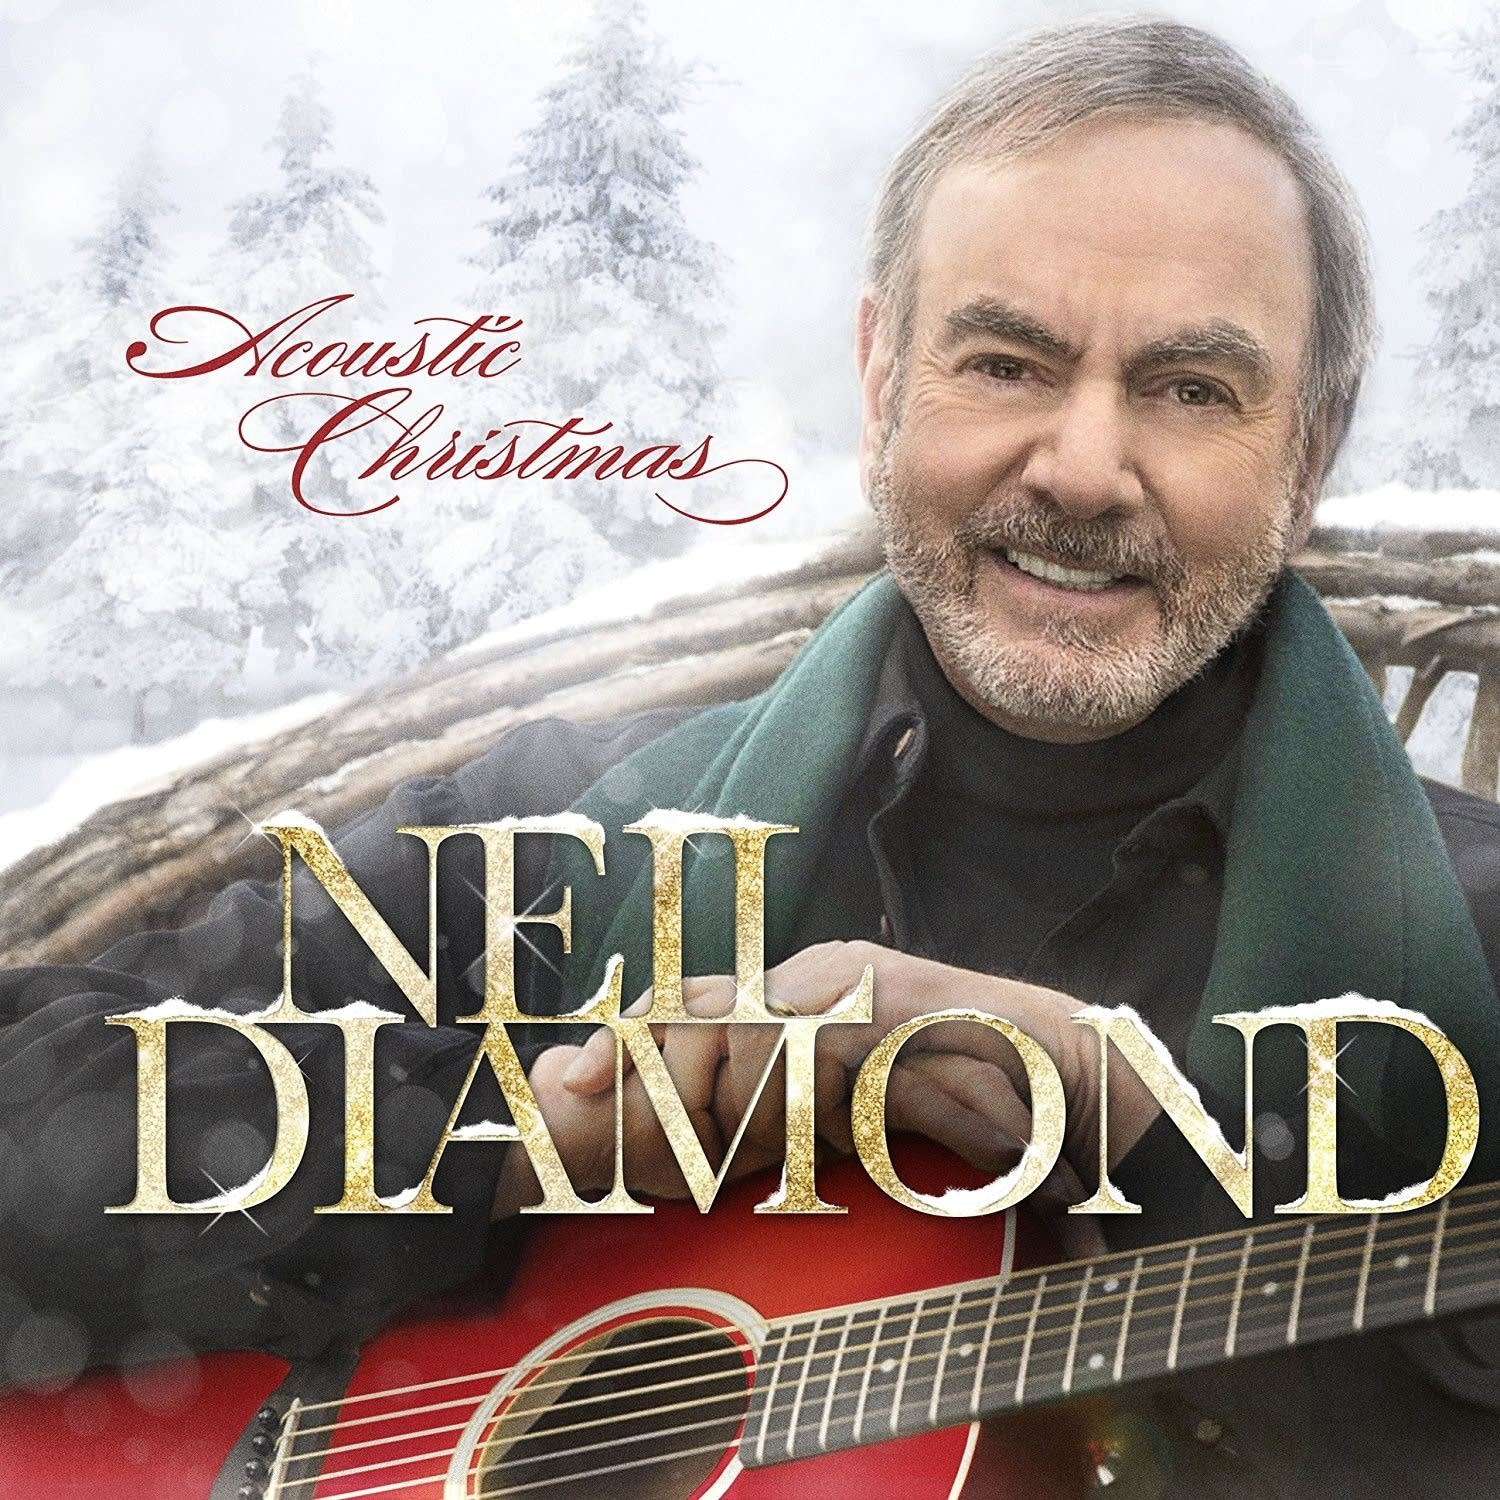 Neil Diamond On Loving Christmas Music As A Jewish Person | The ...